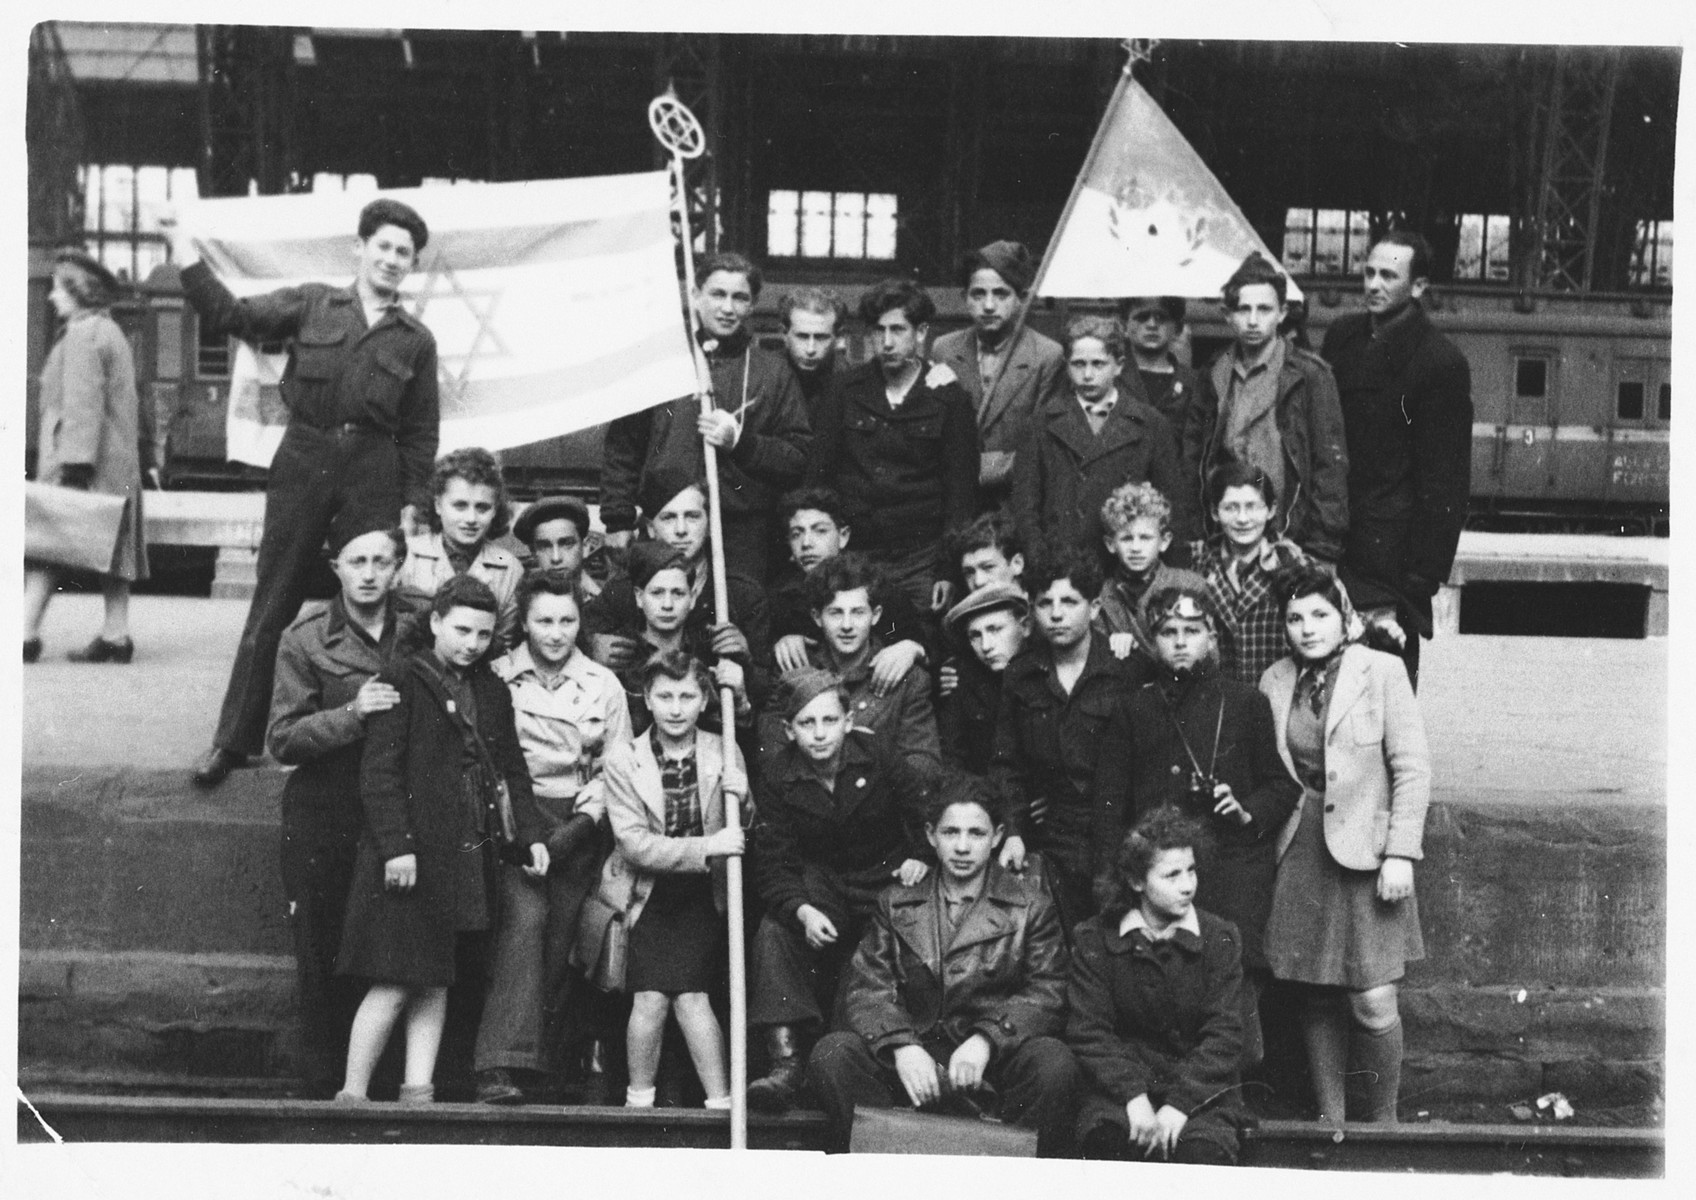 Teenagers from the Zeilsheim children's center pose together with a Zionist flag.  Among those pictured are Eliezer Rosenbach and Shlomo Wacs.